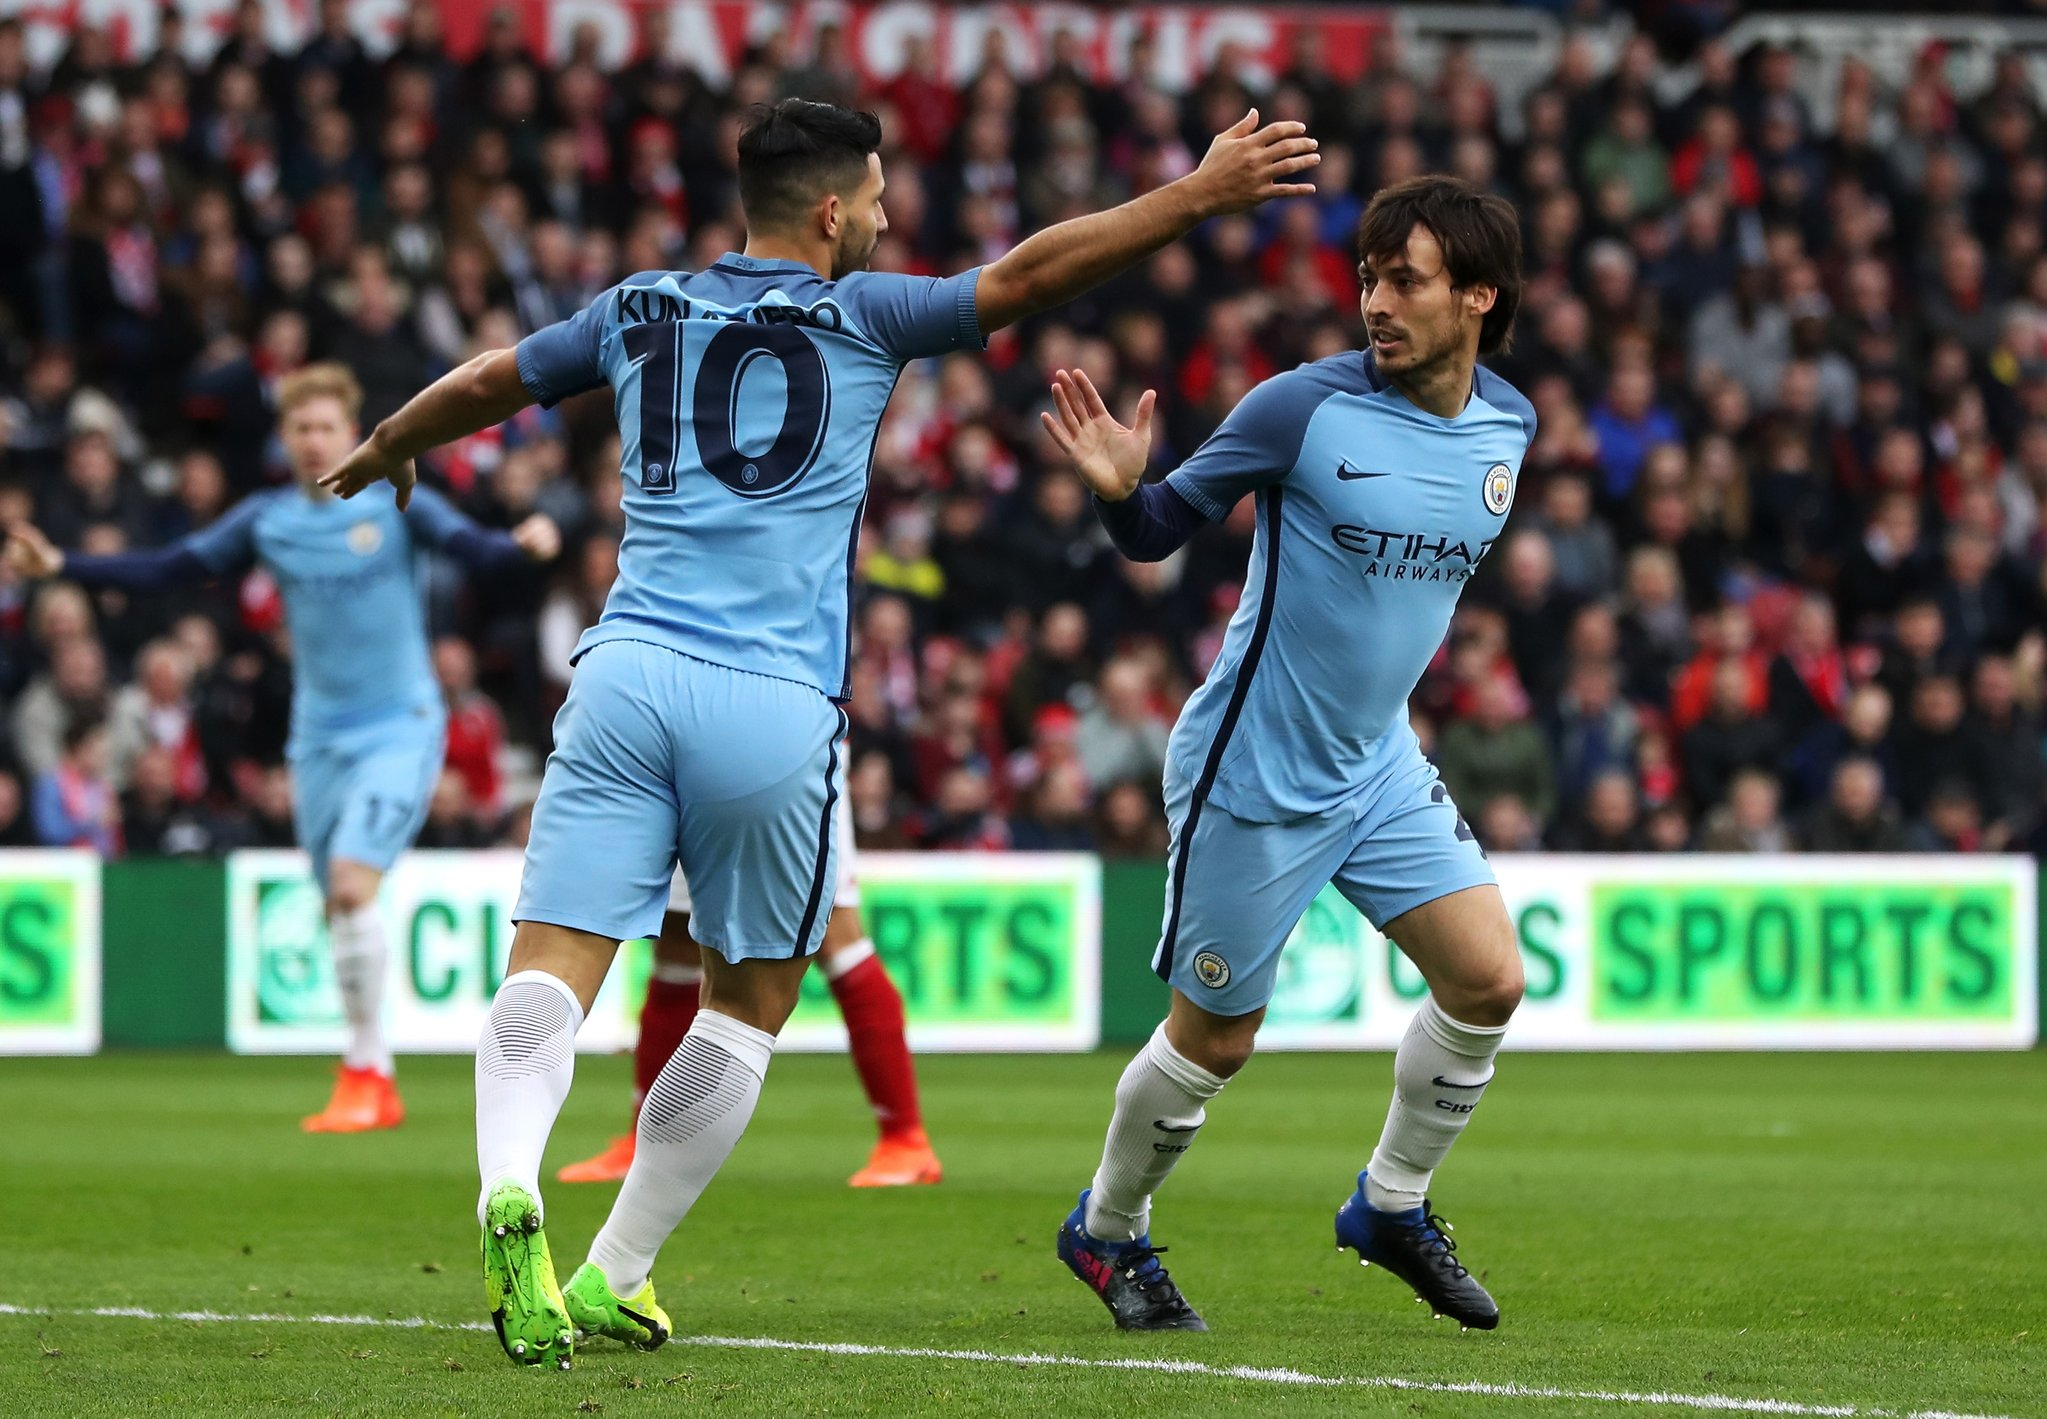 FA Cup: Iheanacho Makes Late Appearance As Man City Cruise Into Semis